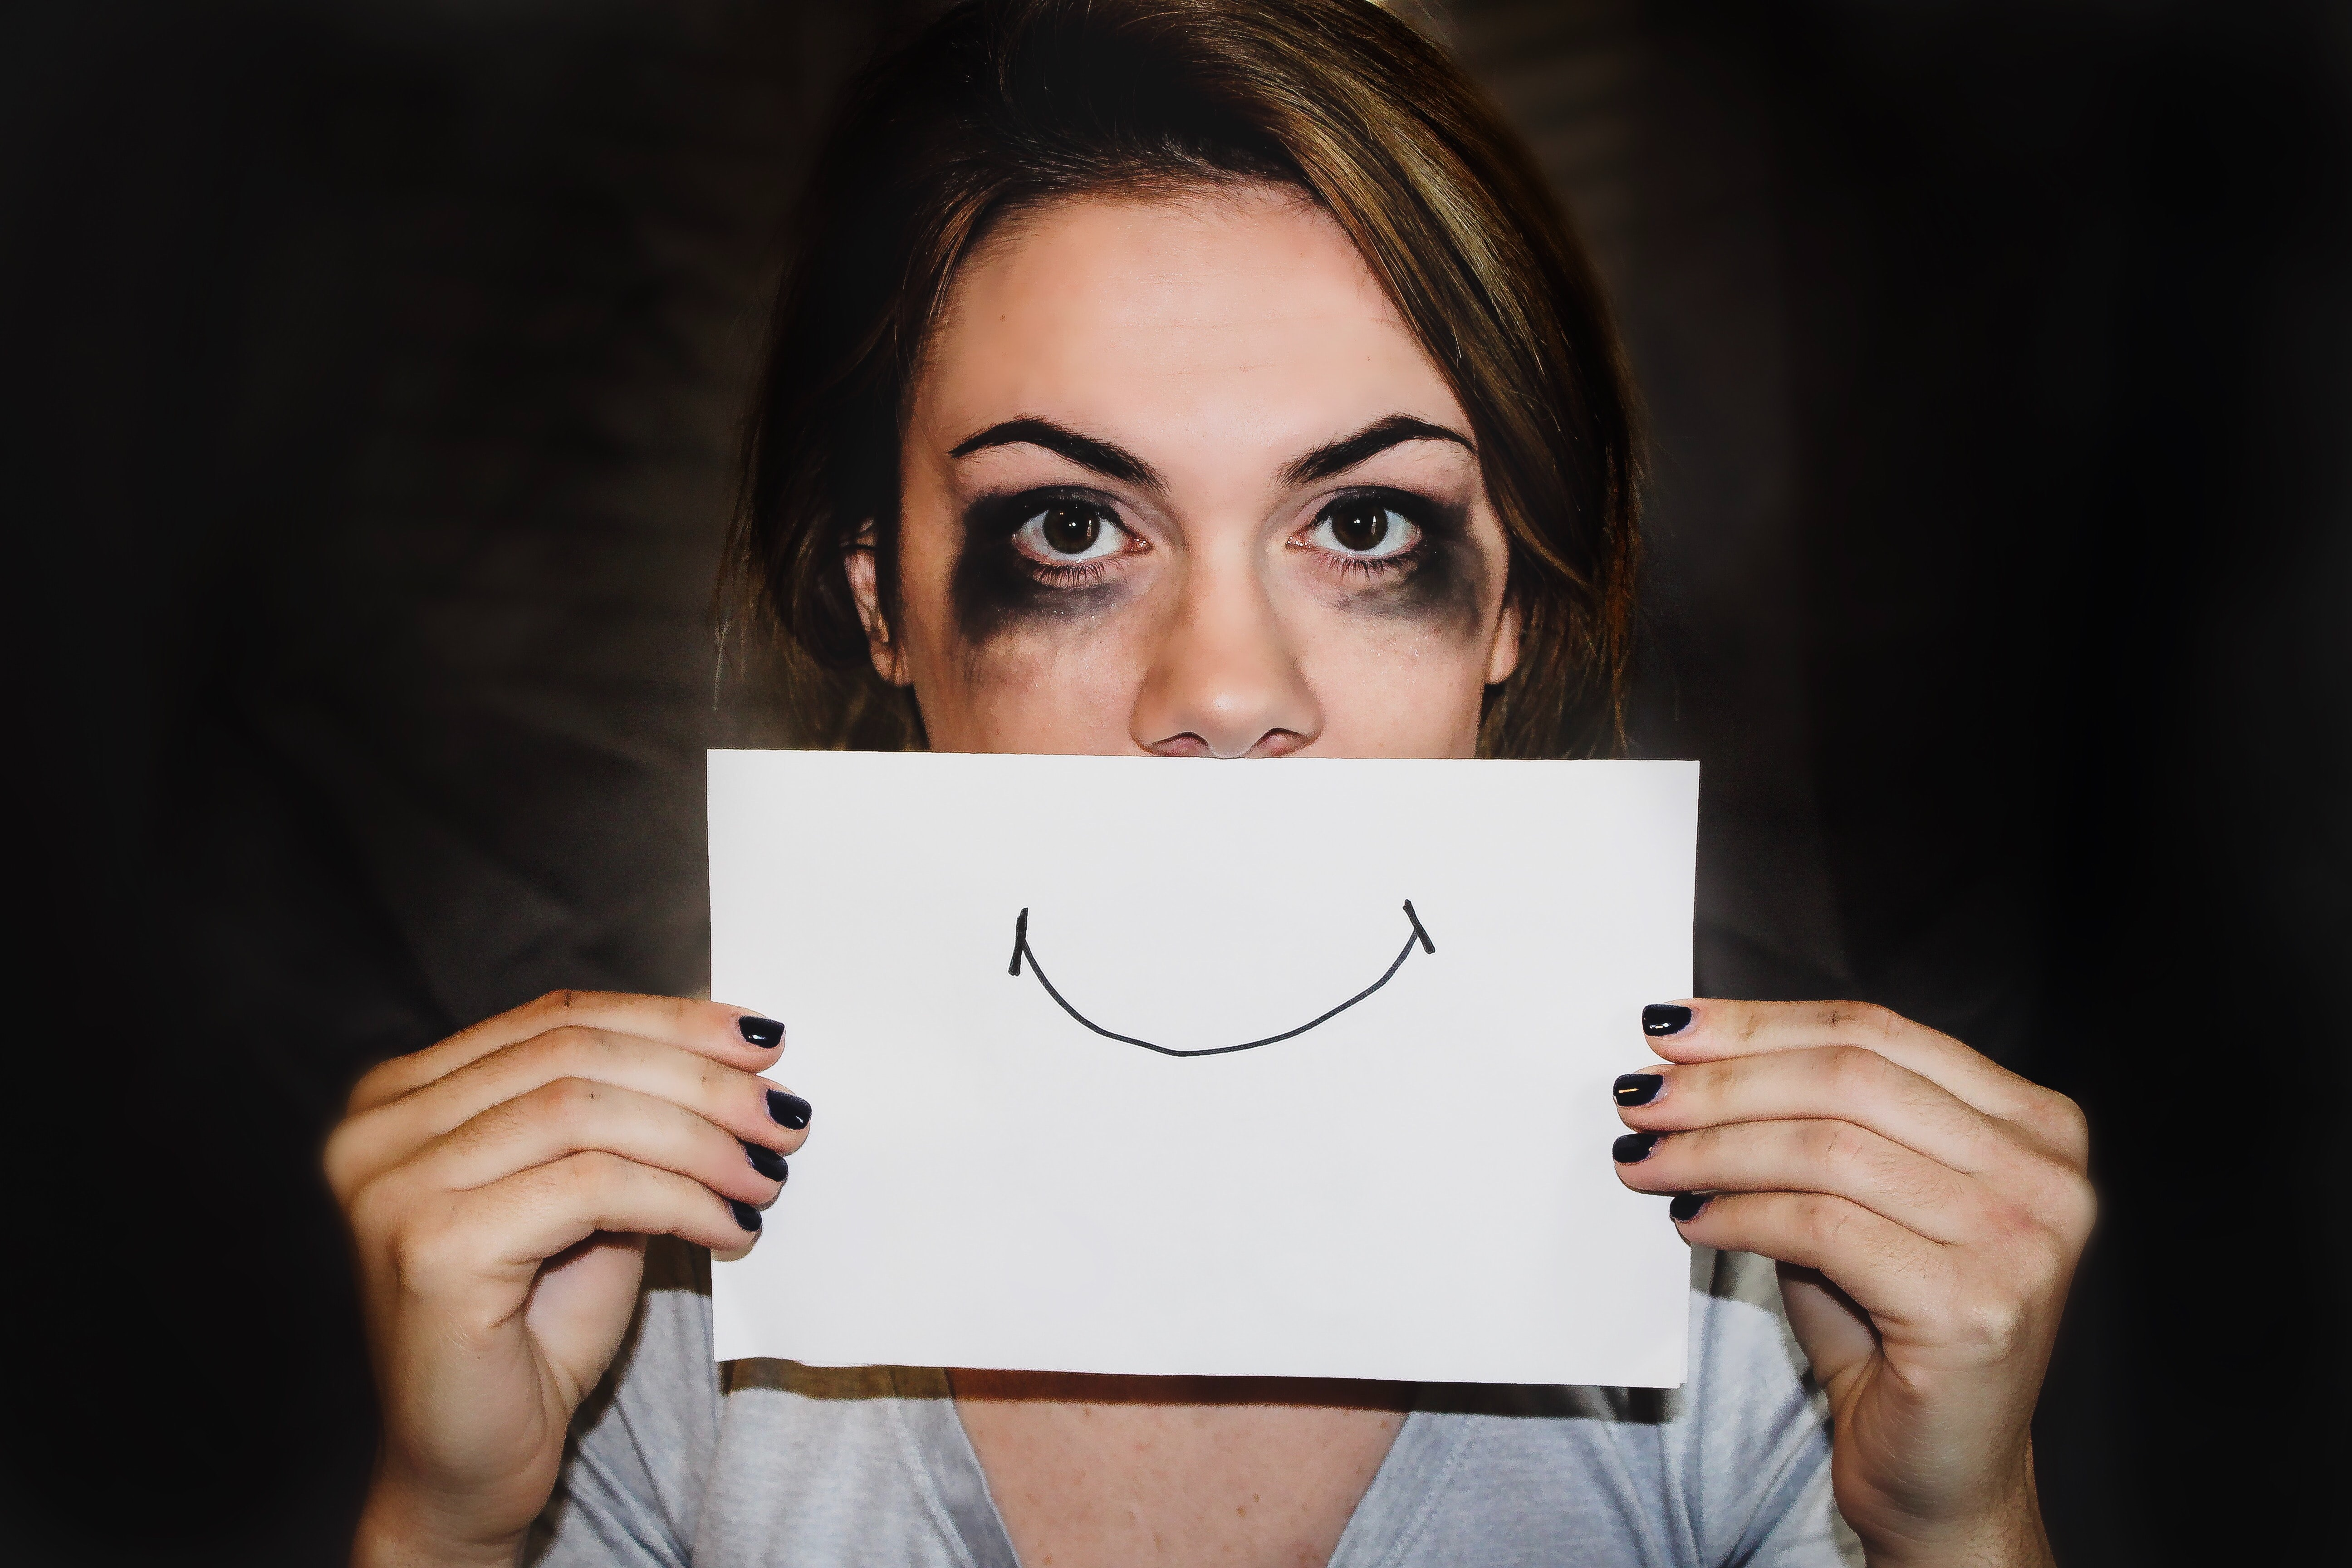 Woman holding paper with smile on